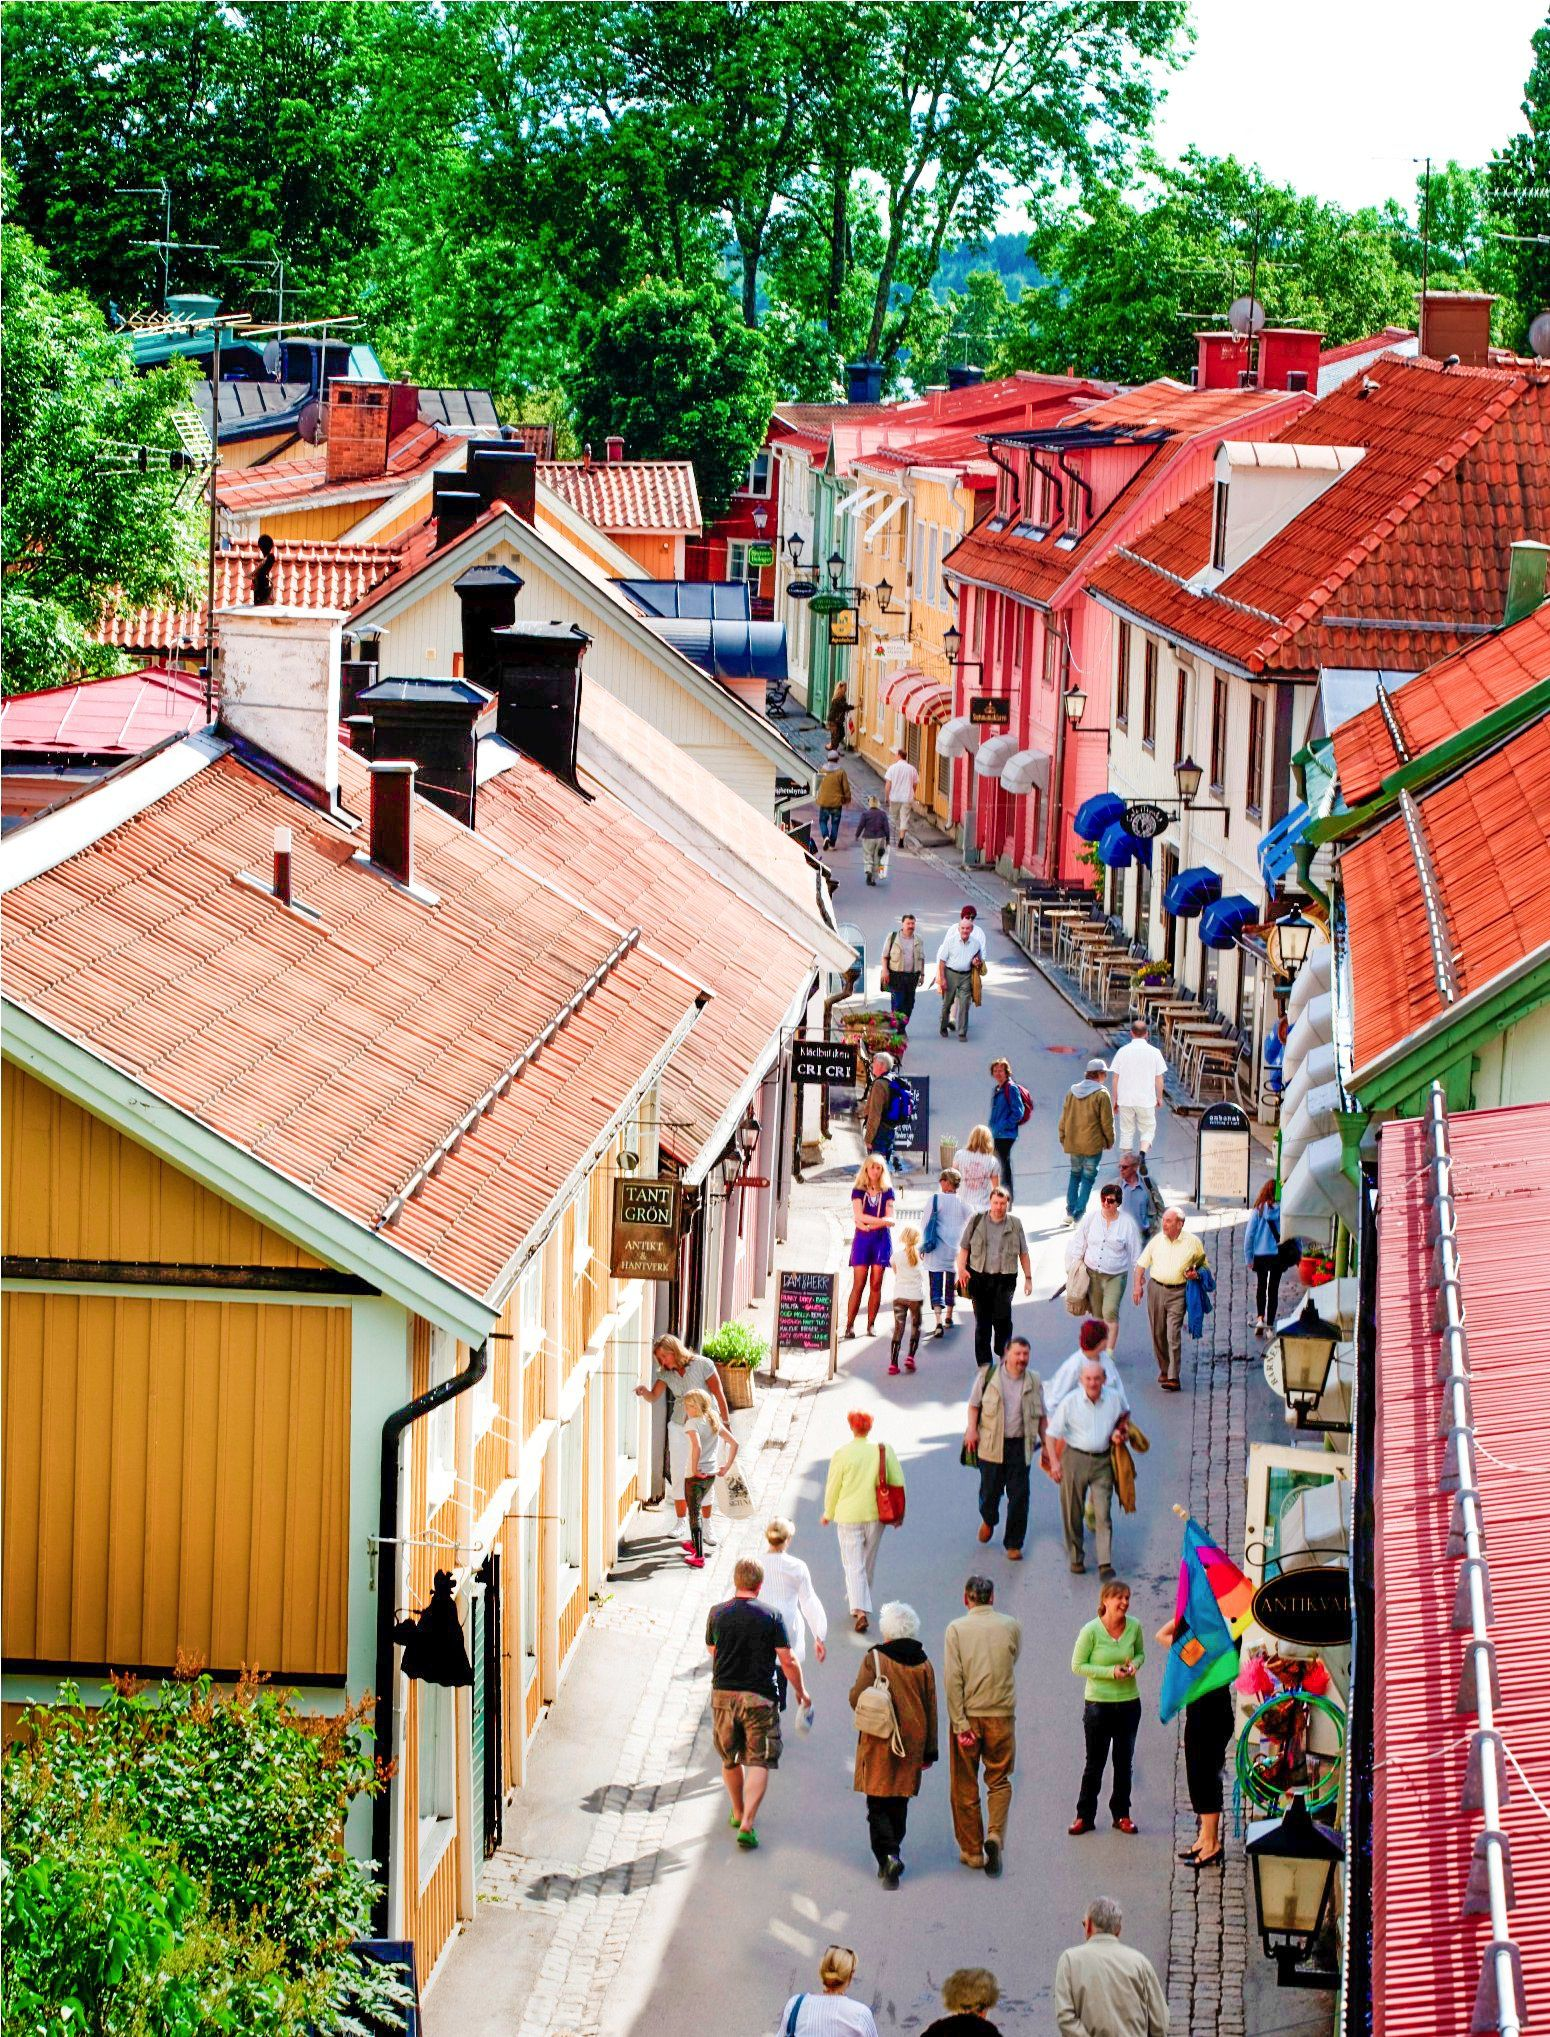 8 Picturesque And Best Towns In Sweden Sweden Travel Sweden Places To Visit Scandinavia Travel